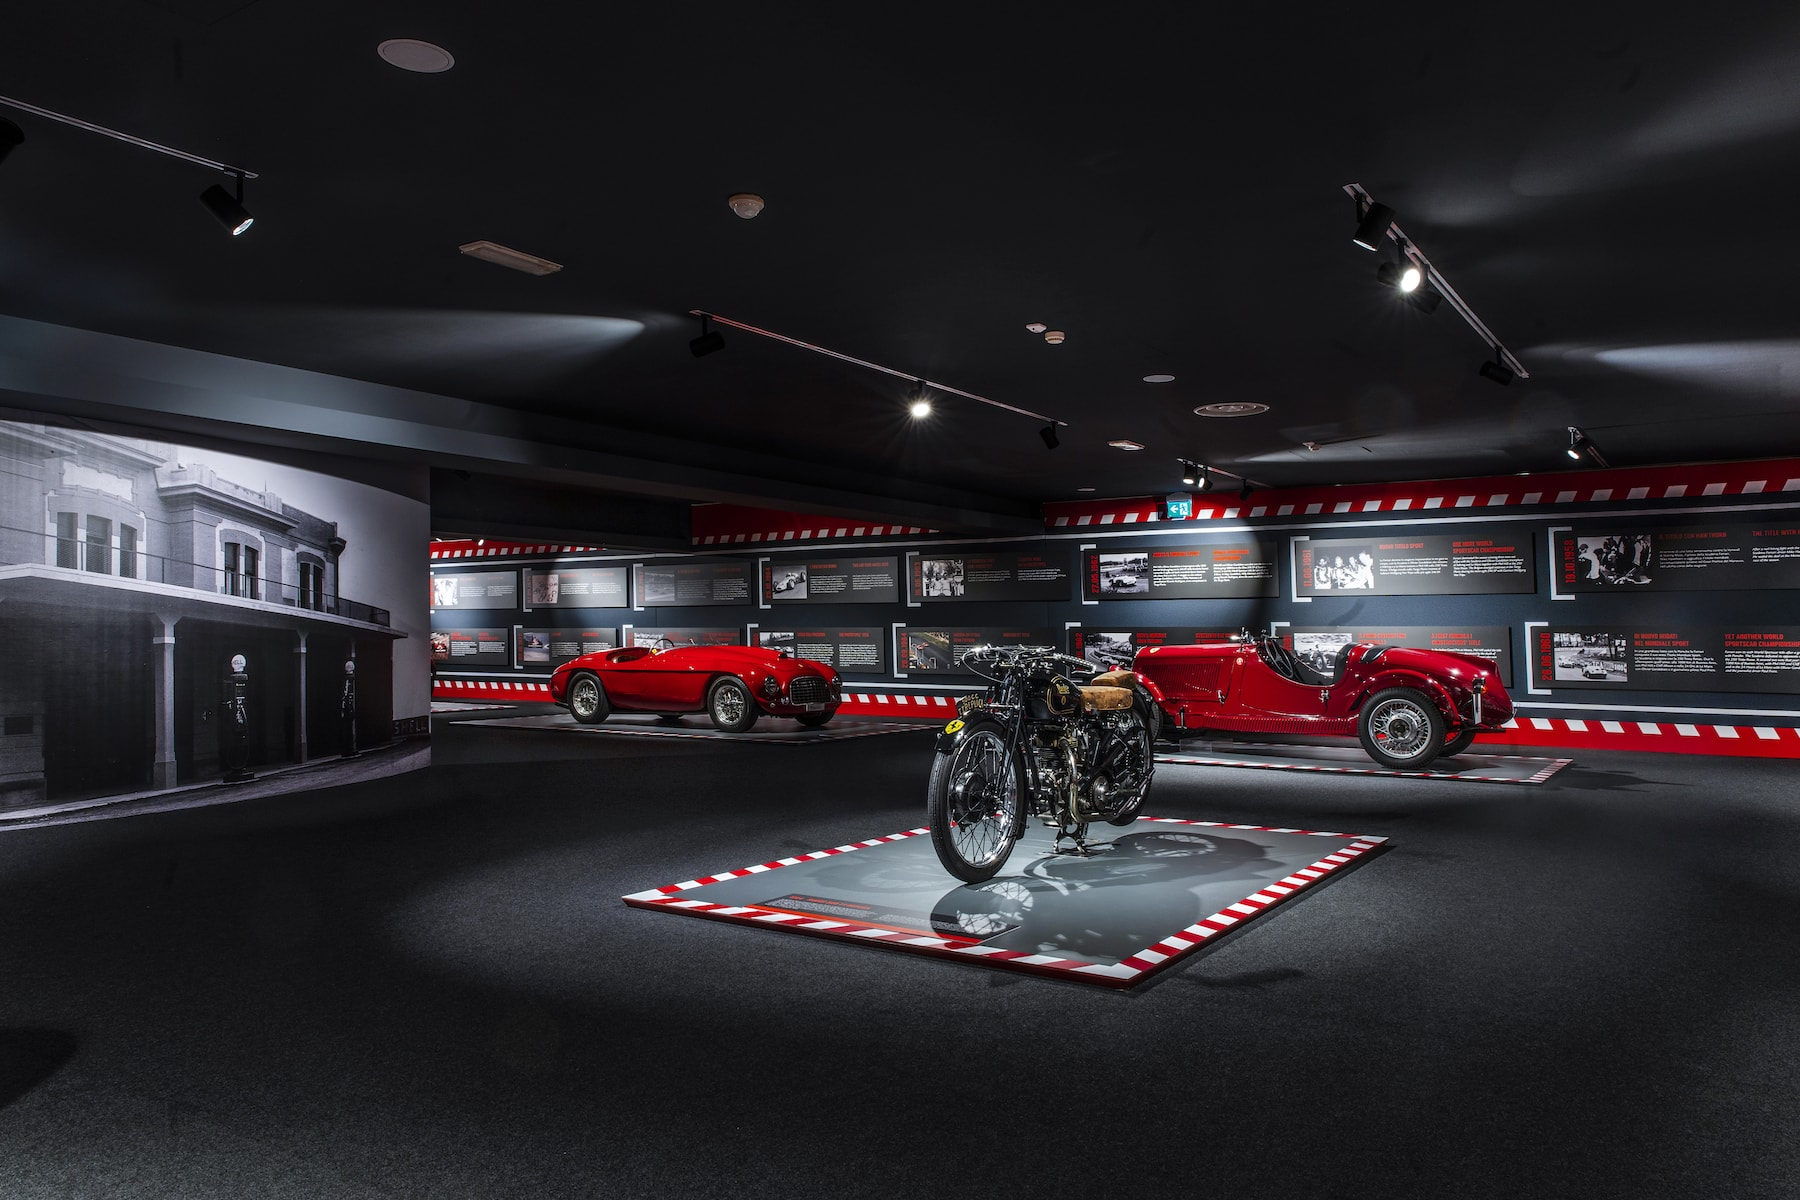 2019 Museo Ferrari 90 years exhibition 4.jpg